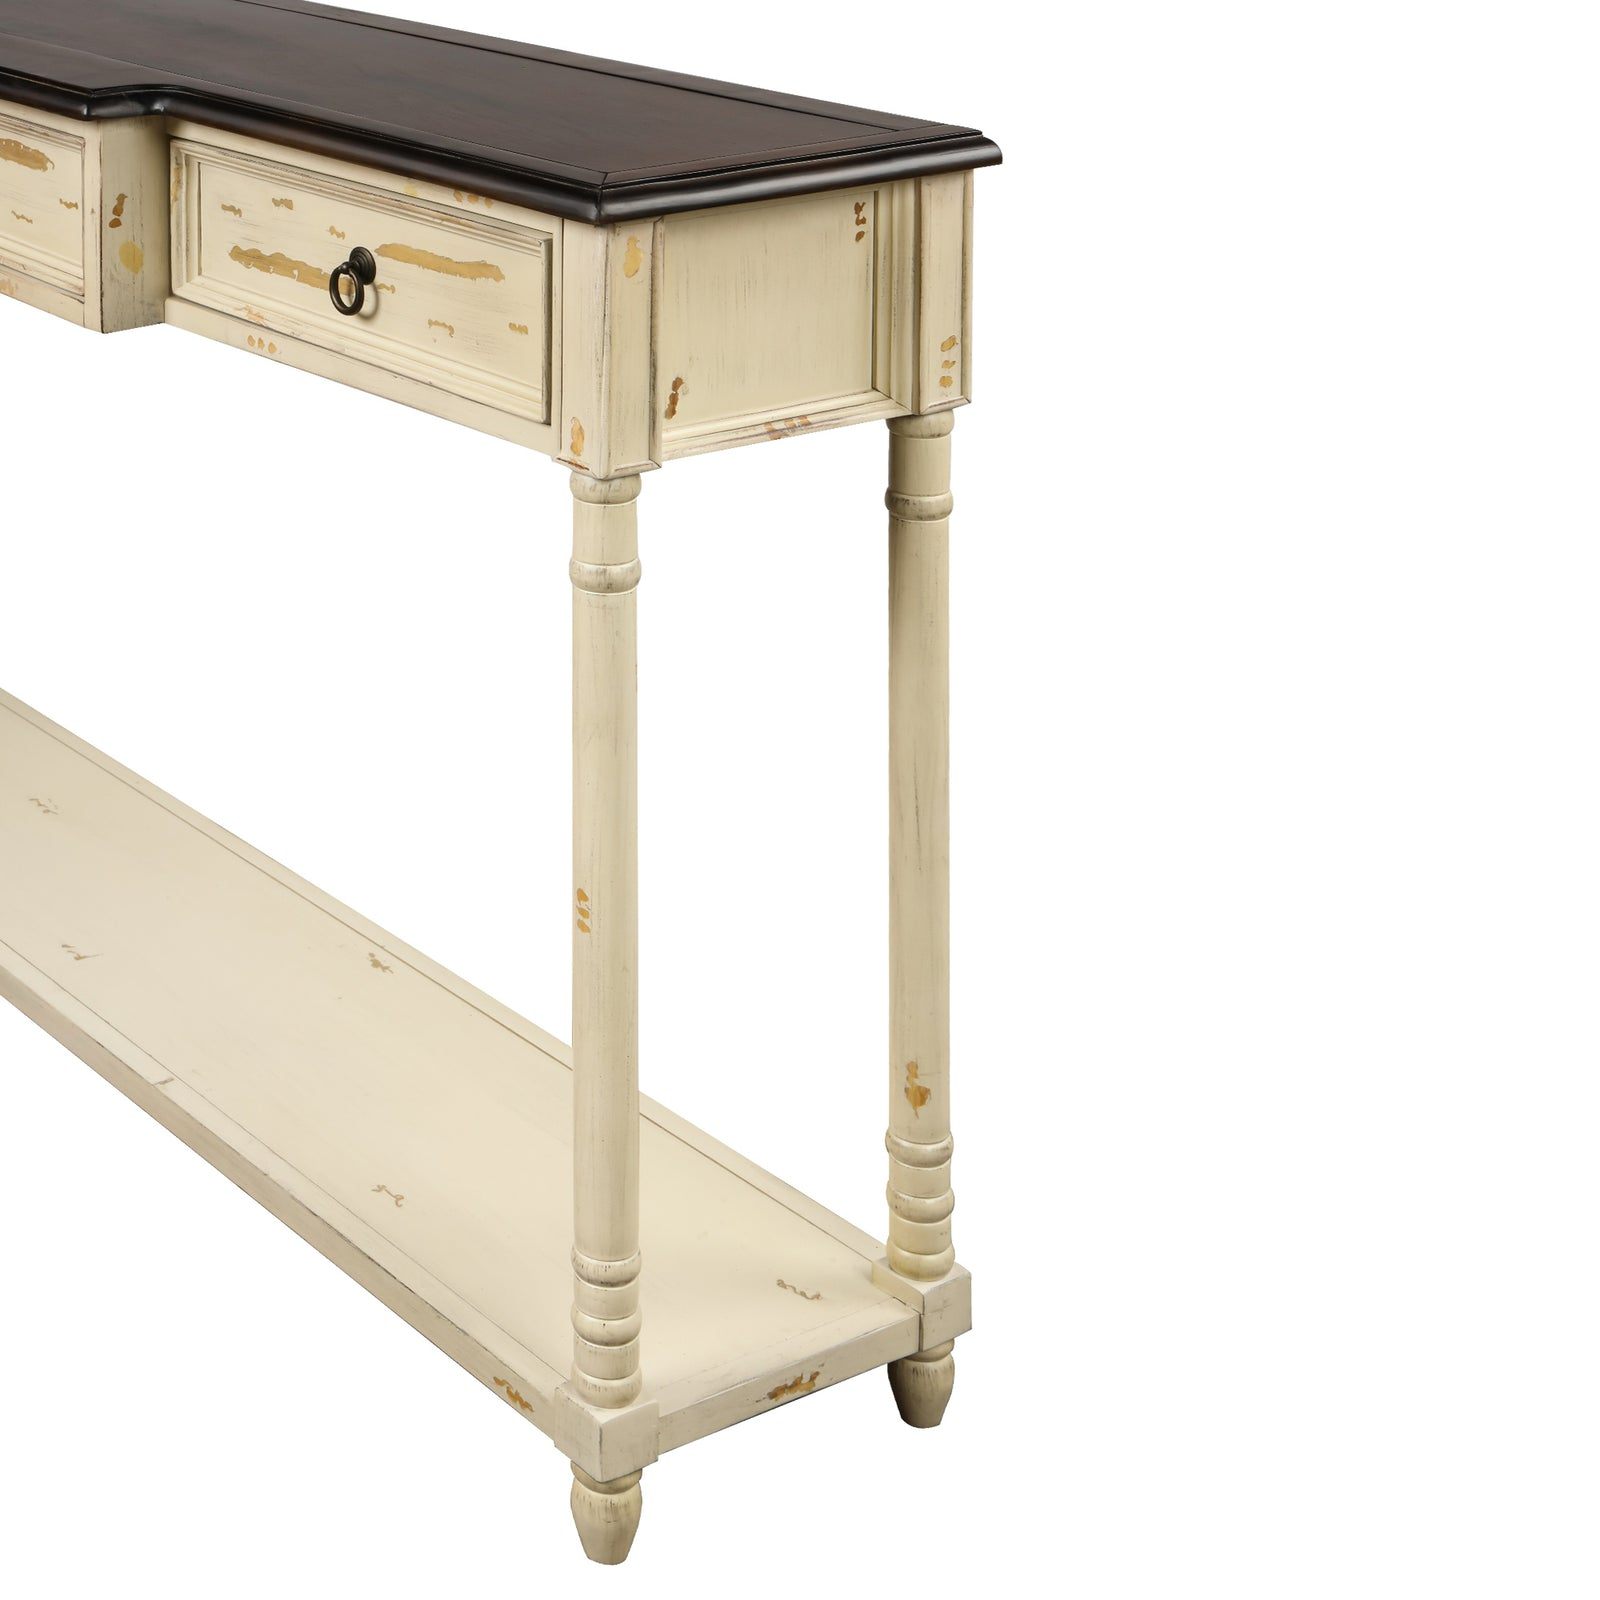 Tan Luxurious & Exquisite Design Console Table Sofa Table with Drawers for Entryway with Projecting Drawers and Long Shelf BH189574